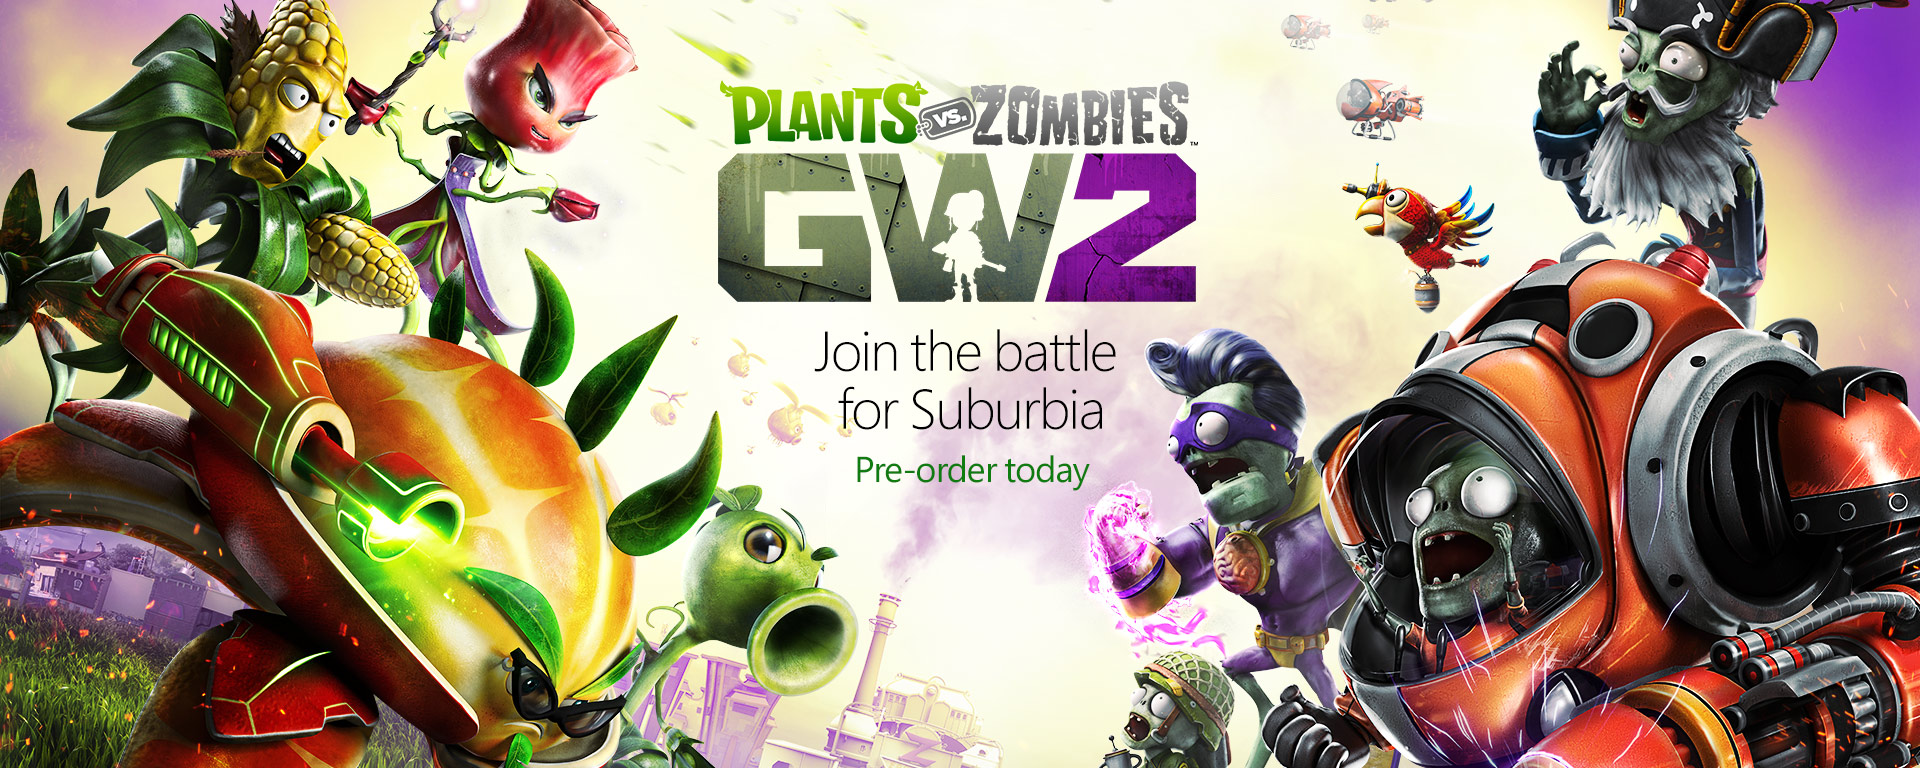 garden warfare matchmaking with friends Thanks for watching my plants vs zombies garden warfare gameplay and walkthrough  take on co-op and multiplayer action with your friends and sow the seeds of.